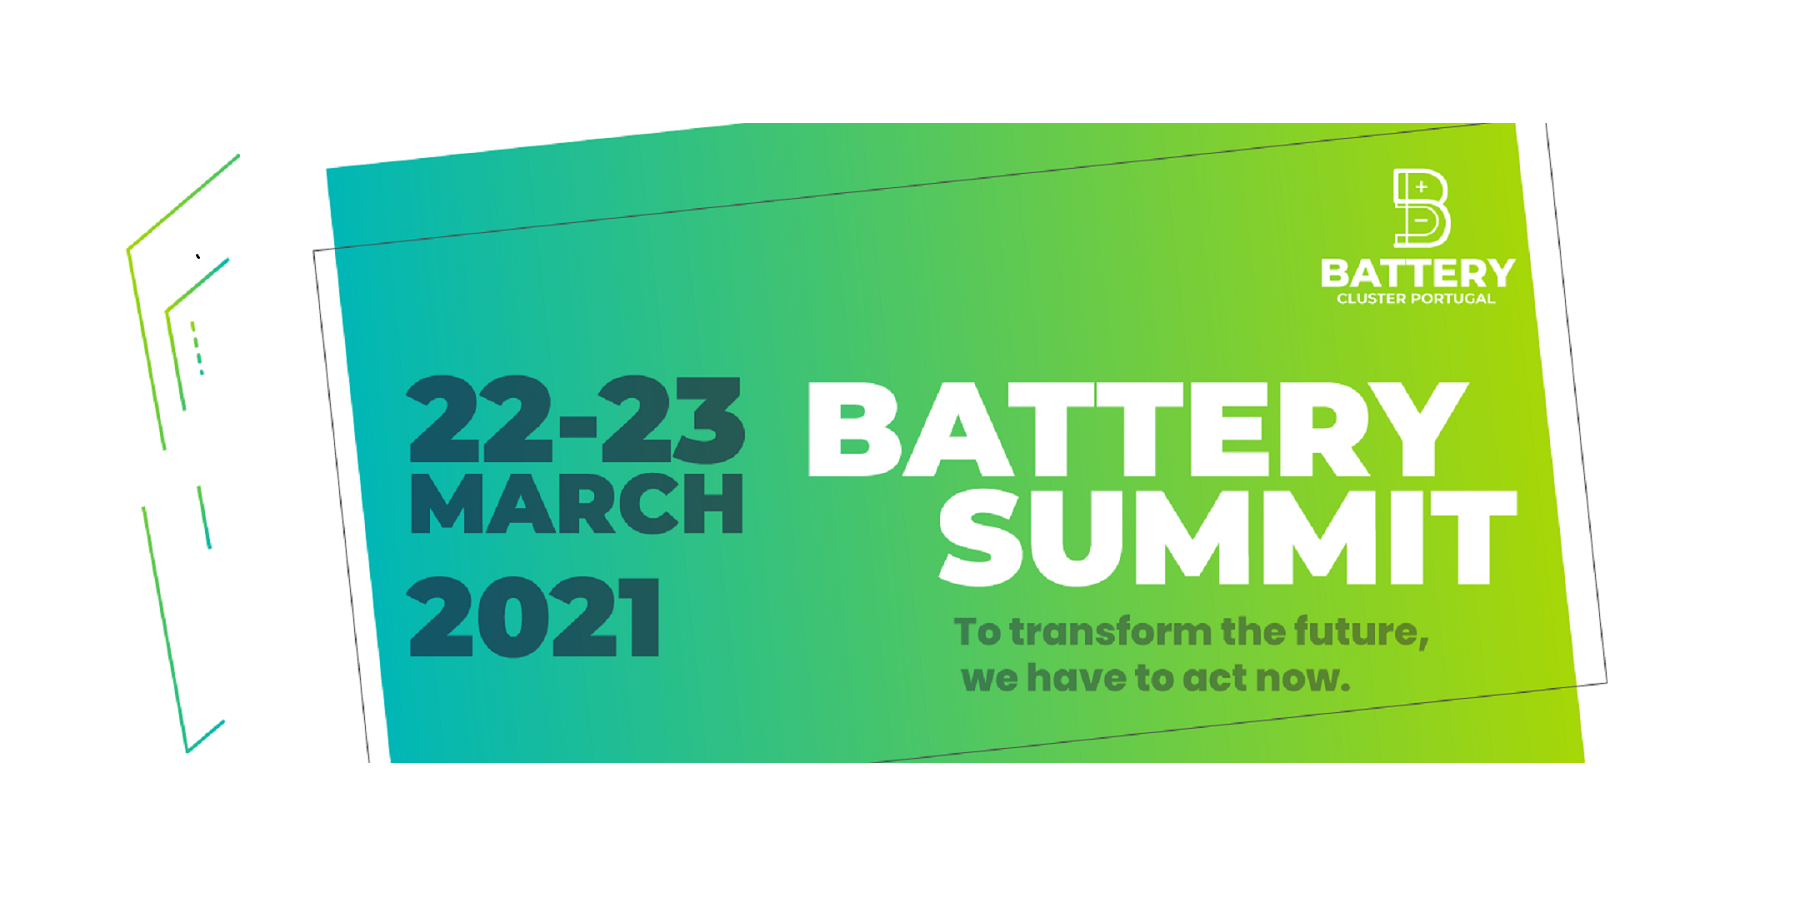 lneg-is-taking-part-in-the-battery-summit